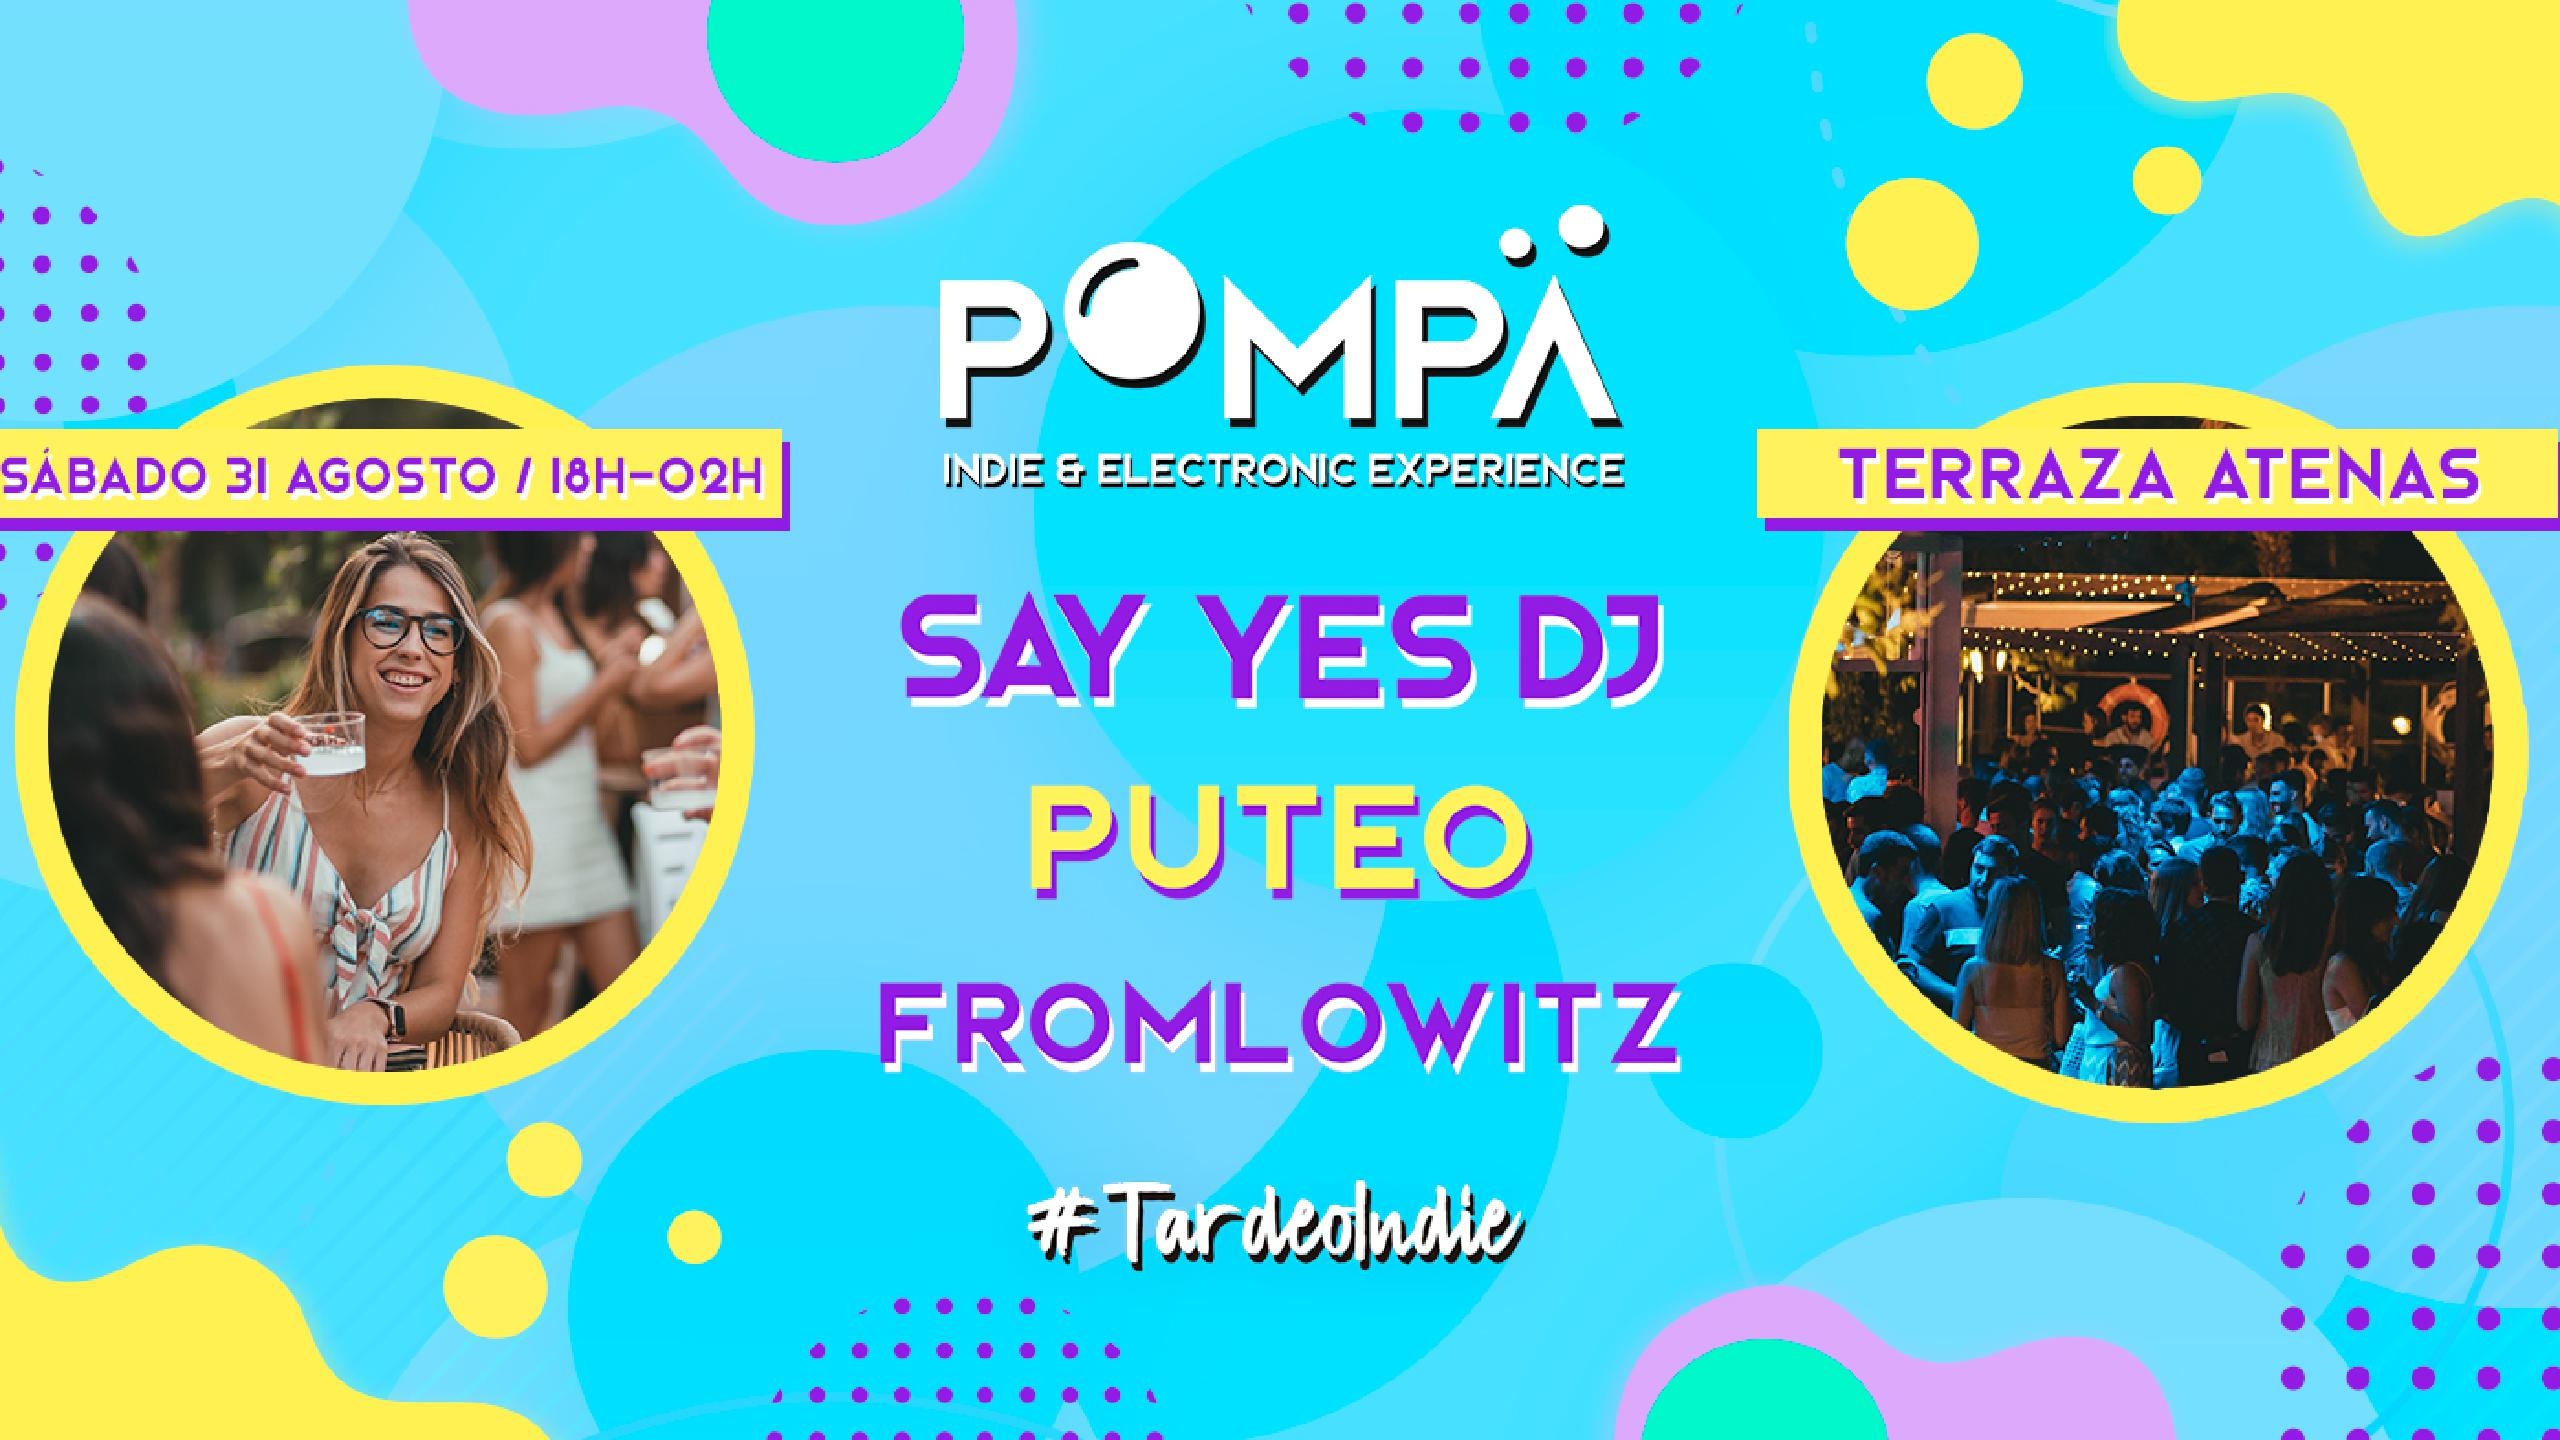 Fromlowitz Puteo Say Yes Dj Concert Tickets For Terraza